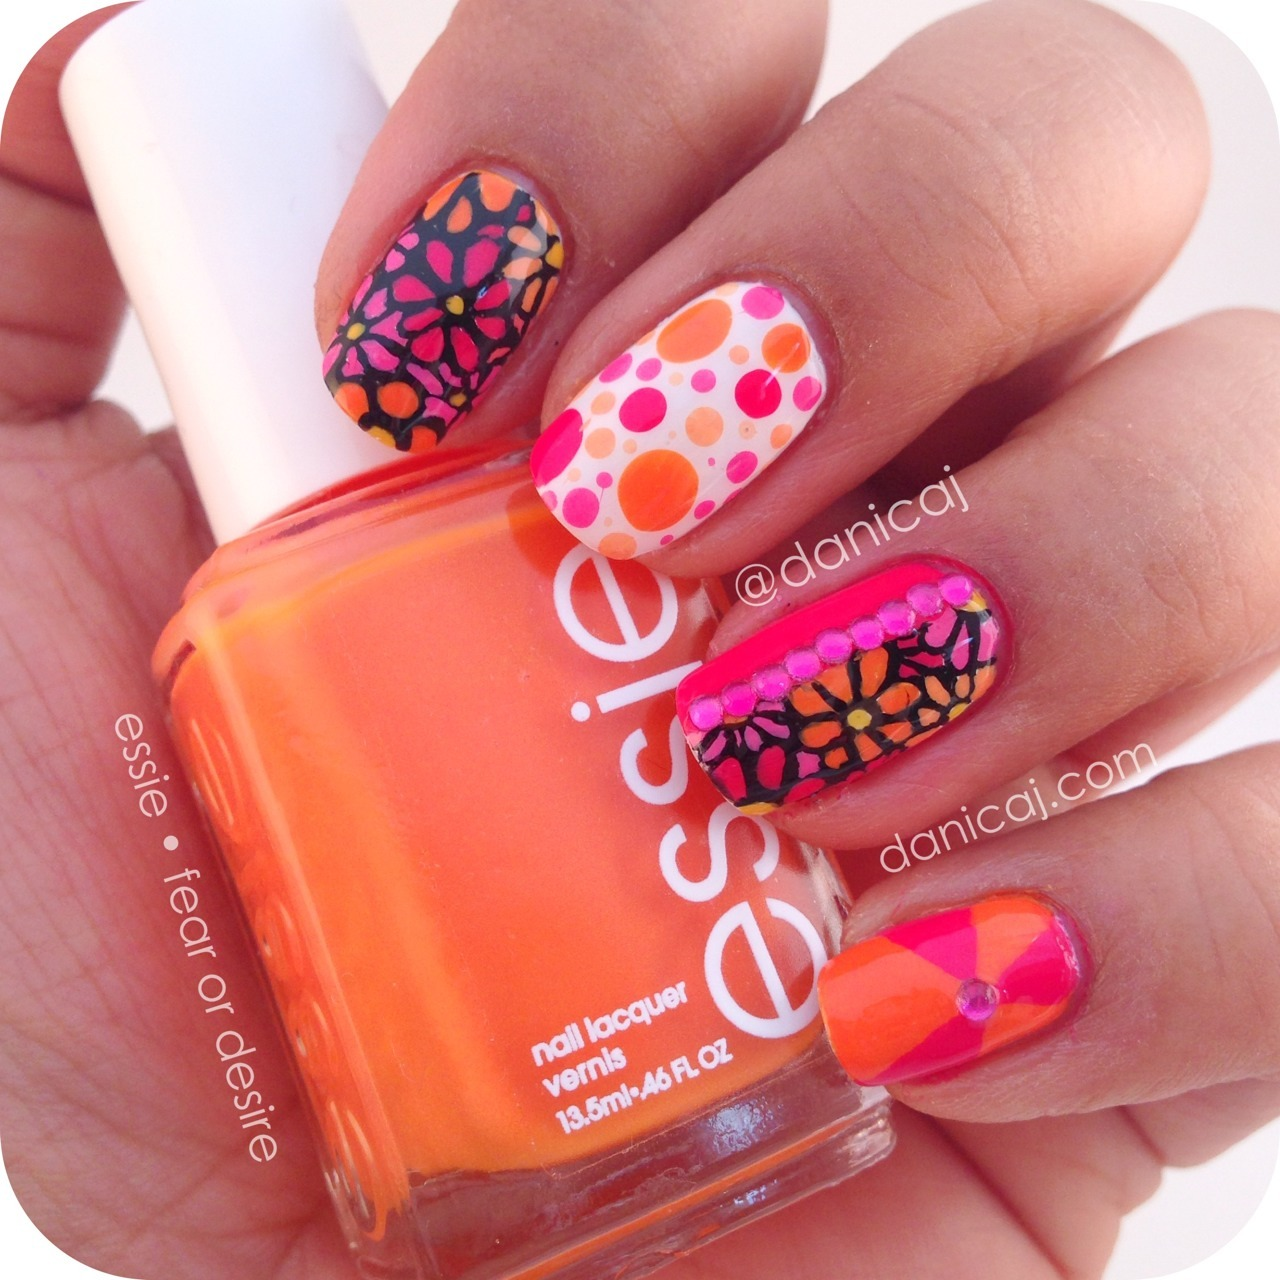 You can't tell me this isn't fabulous! Mix n match mani filled with hand painted florals, dots, and rhinestones! Come on summer, where you at!?